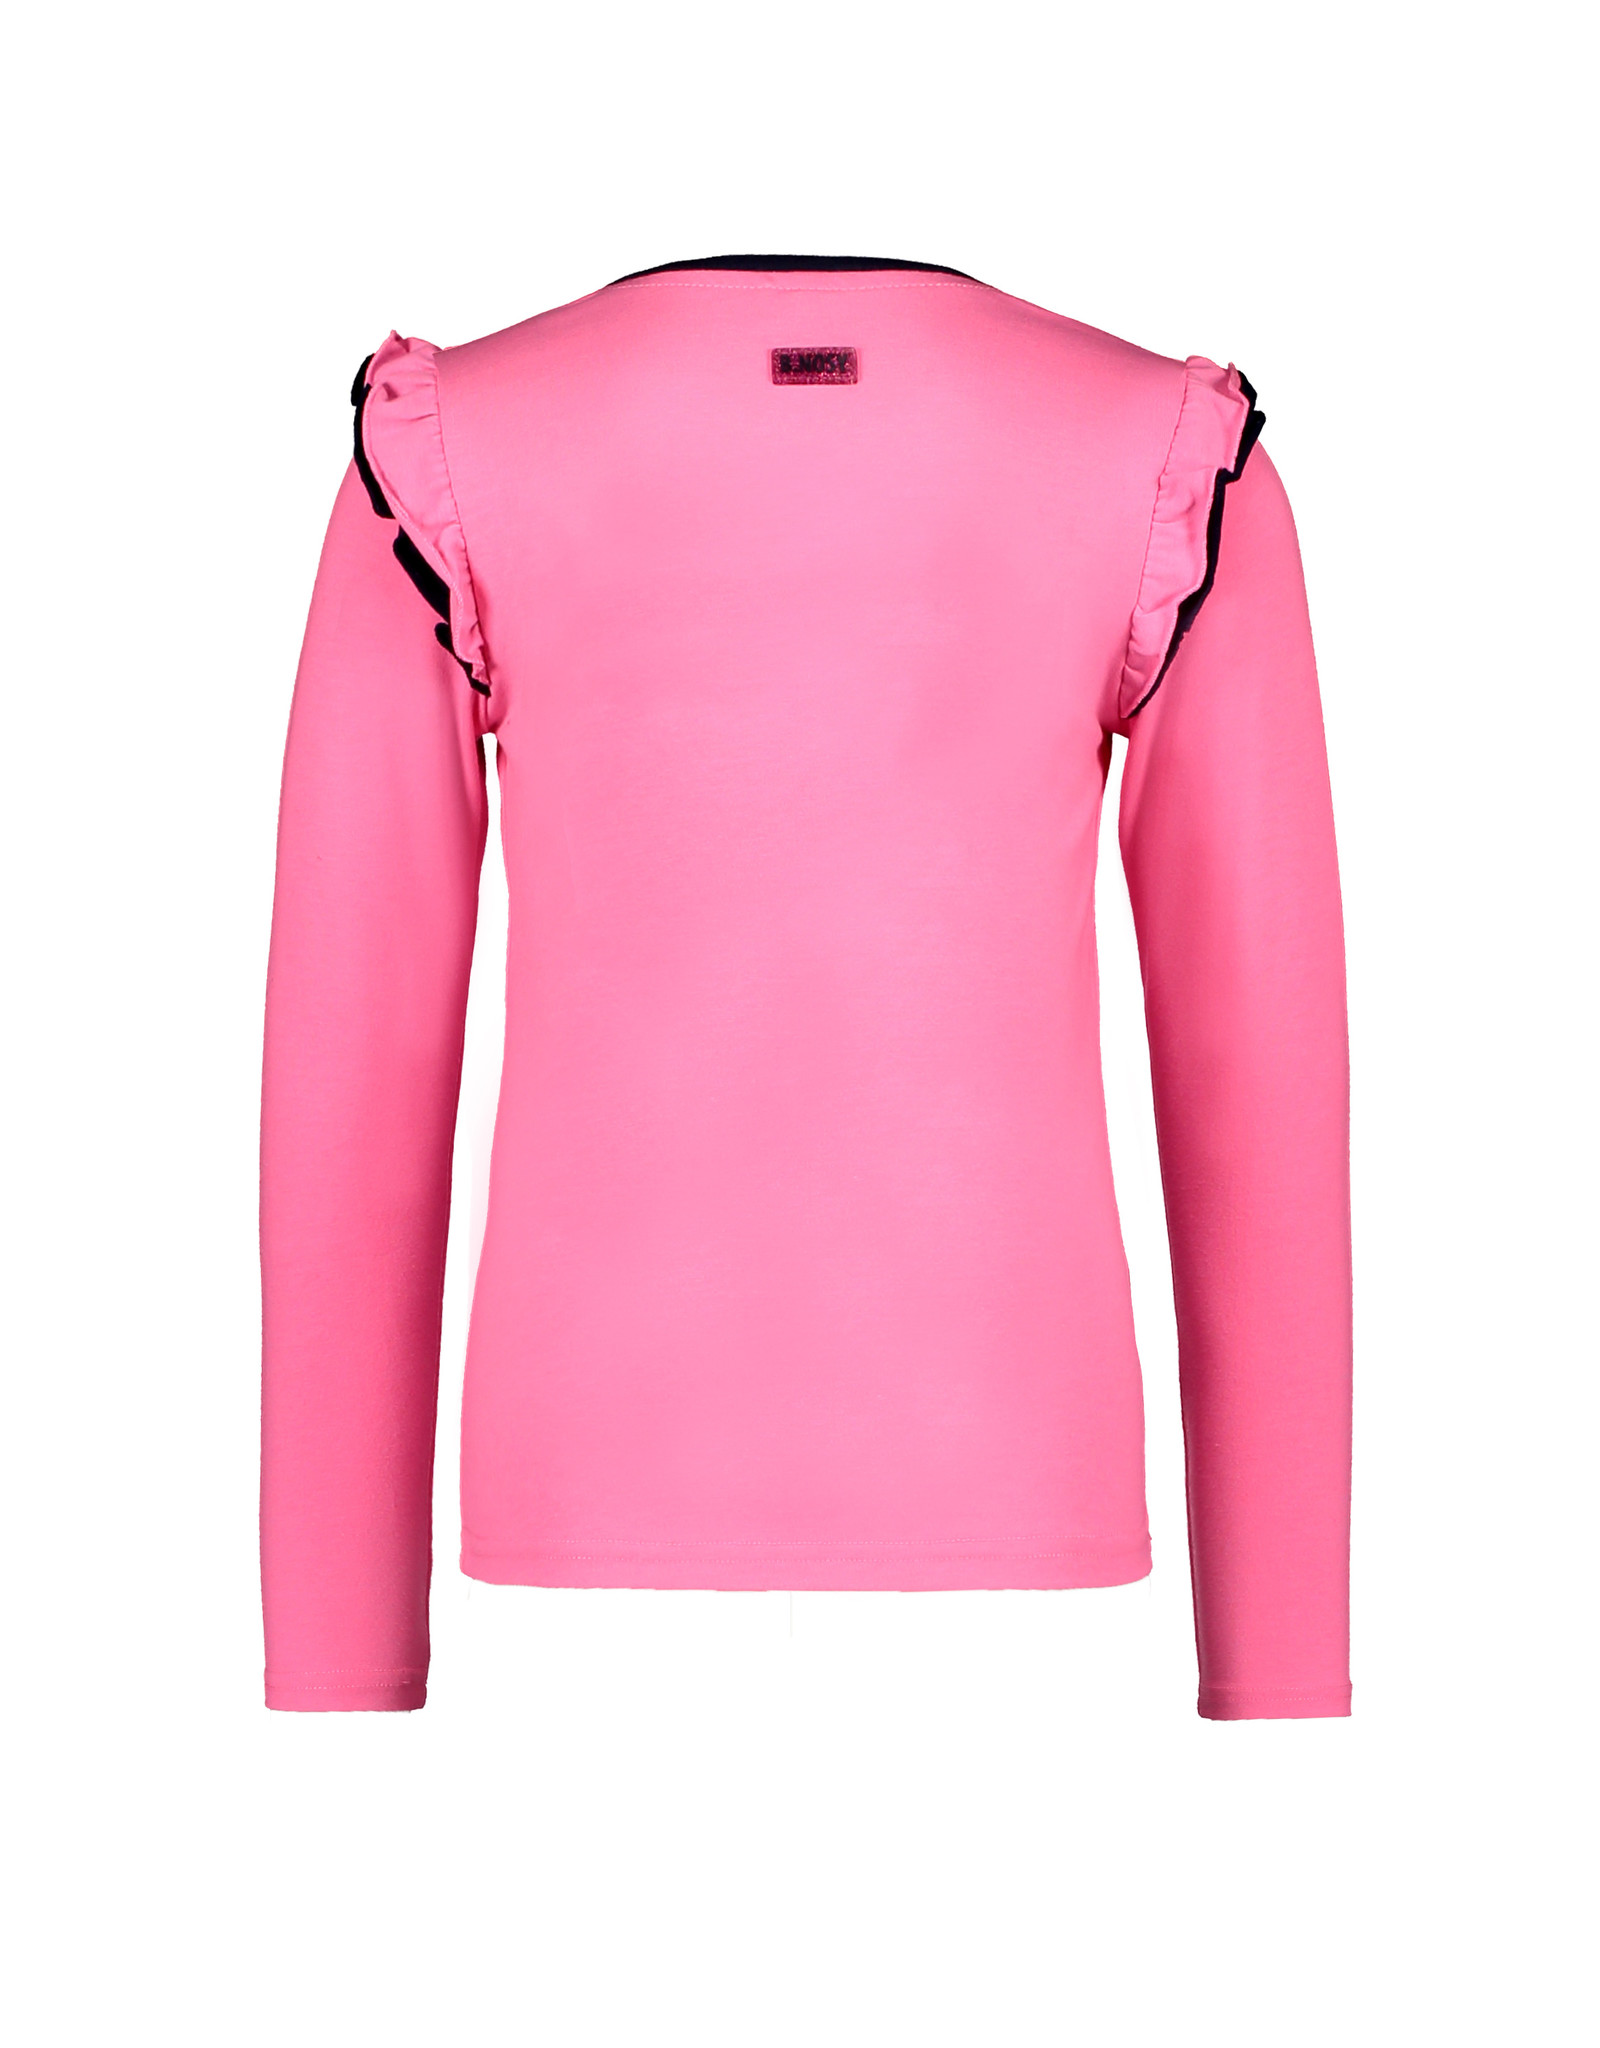 B-Nosy Girls t-shirt  with double layer ruffle around armhole, Knock out pink